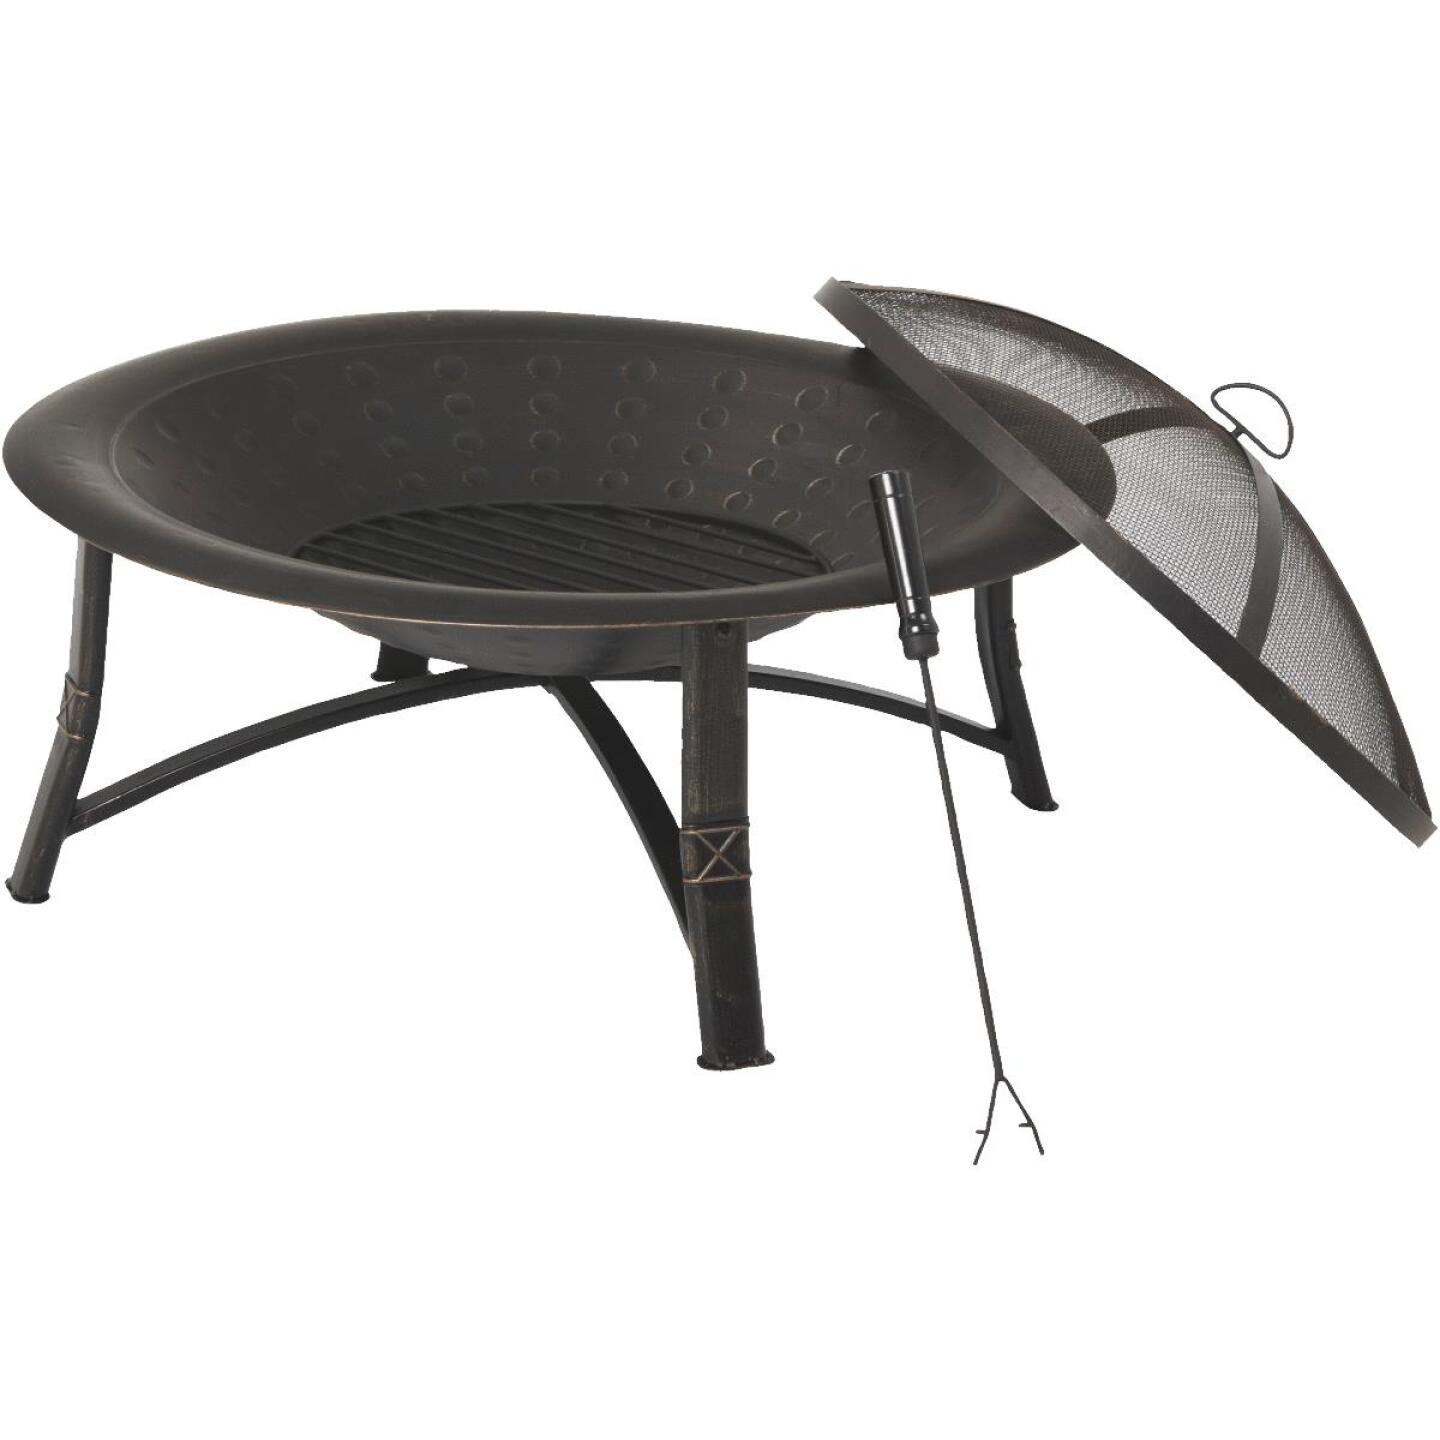 Outdoor Expressions 35 In. Antique Bronze Round Steel Fire Pit Image 2